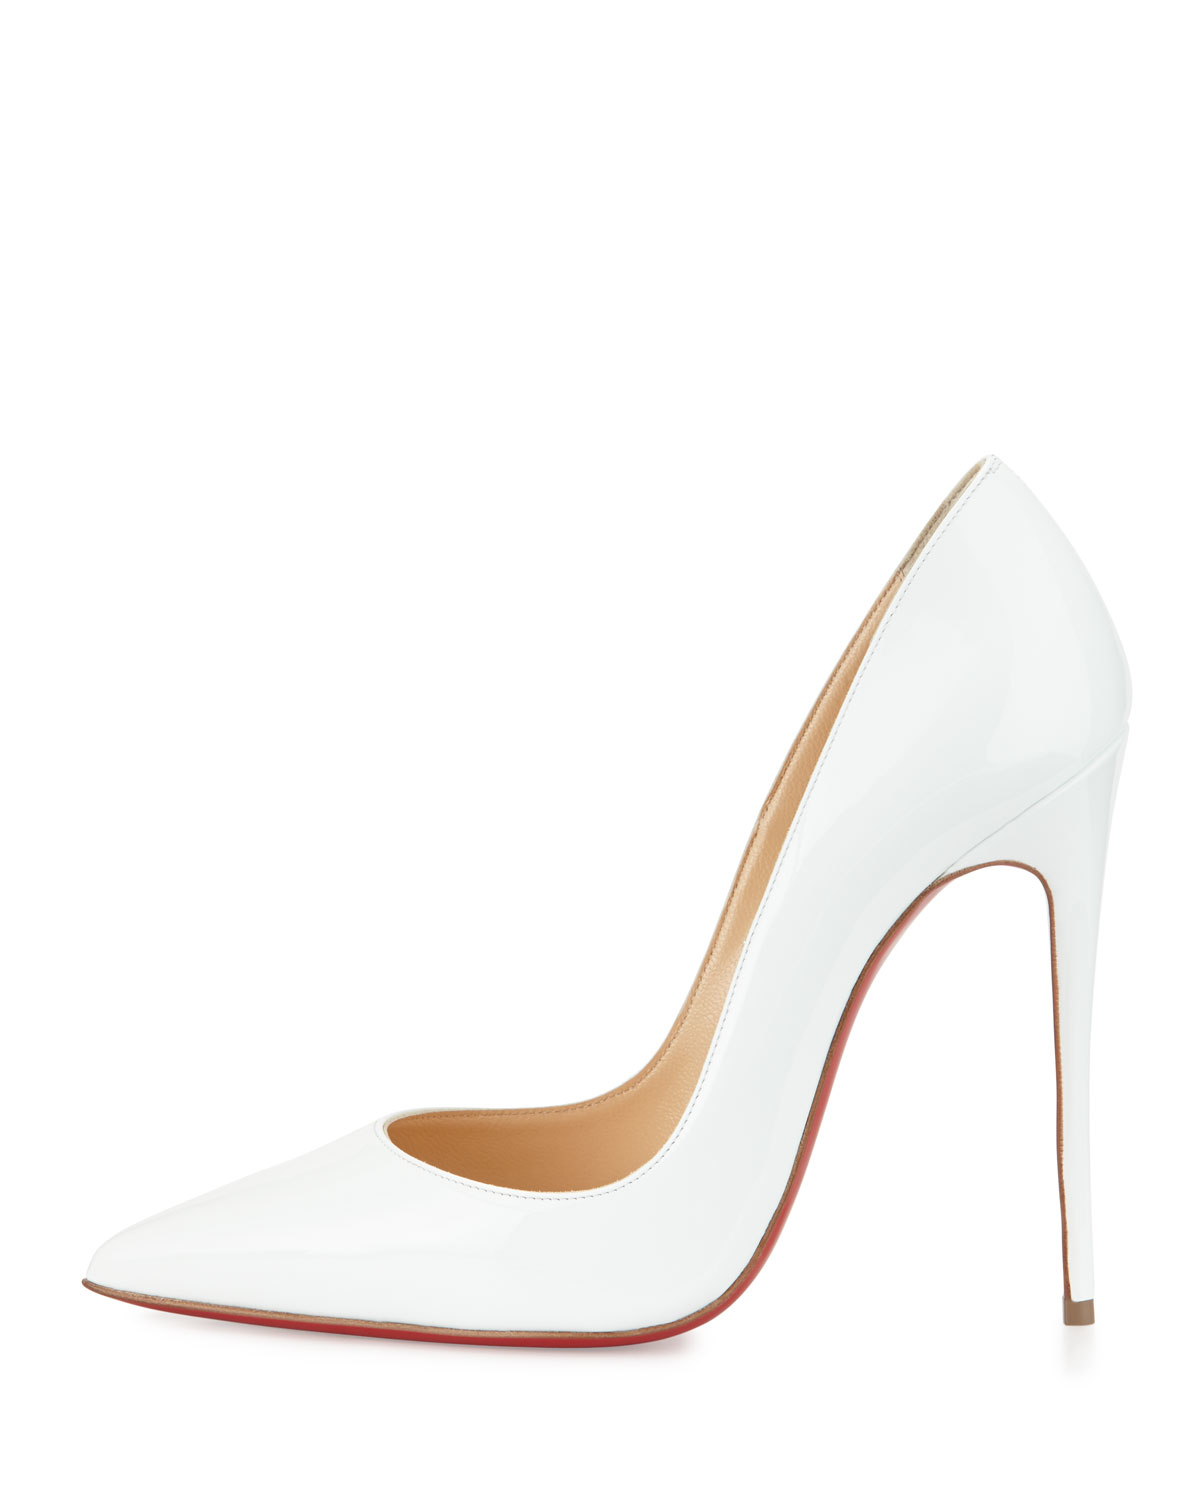 christian louboutin wawy dolly patent squiggly-heel red sole pump